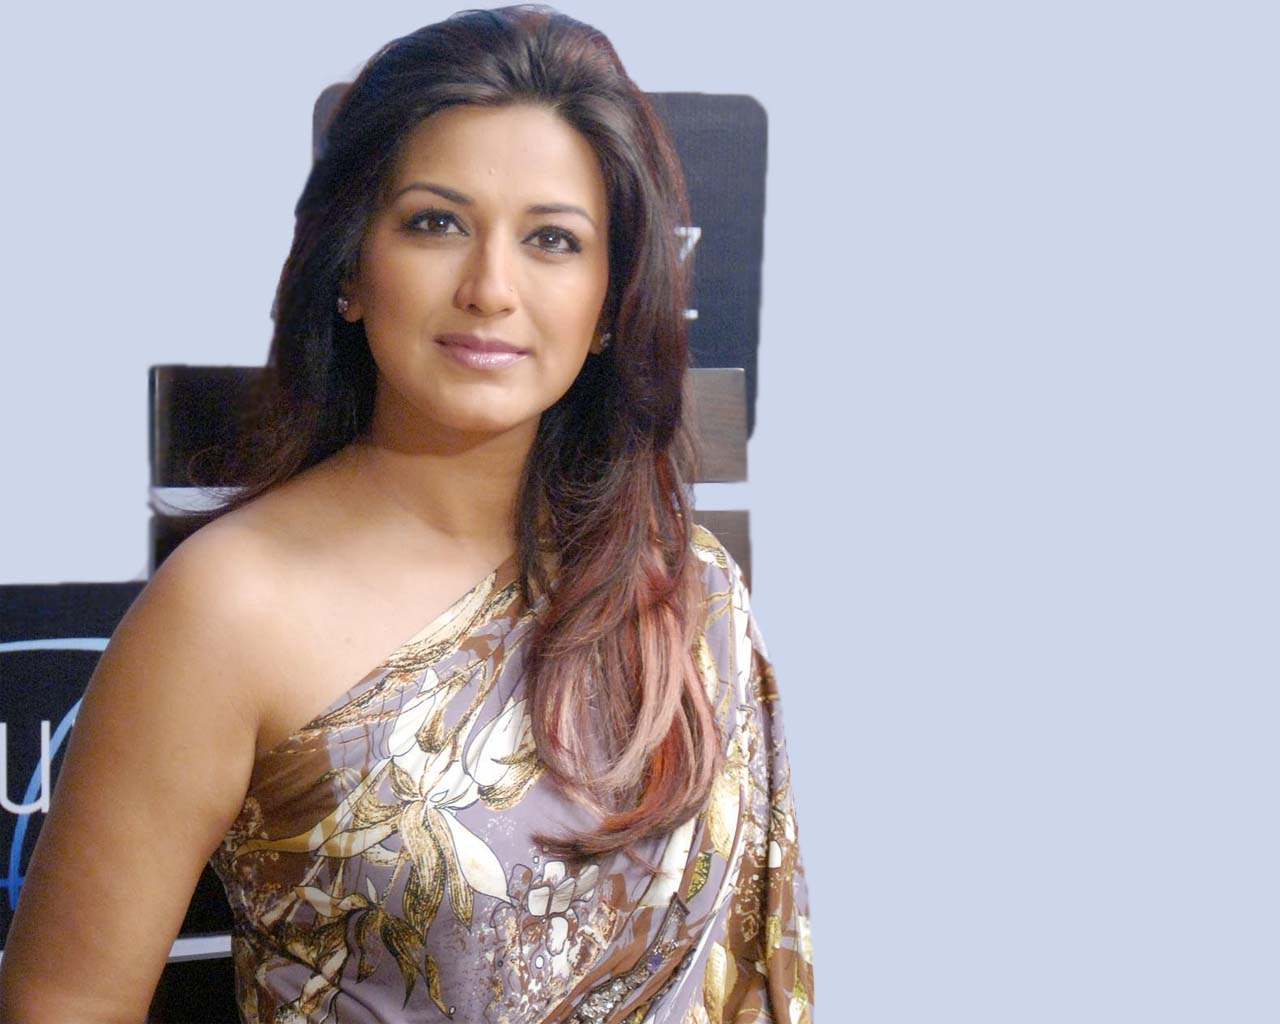 Sexy hot sonali bendre nude photos seems brilliant